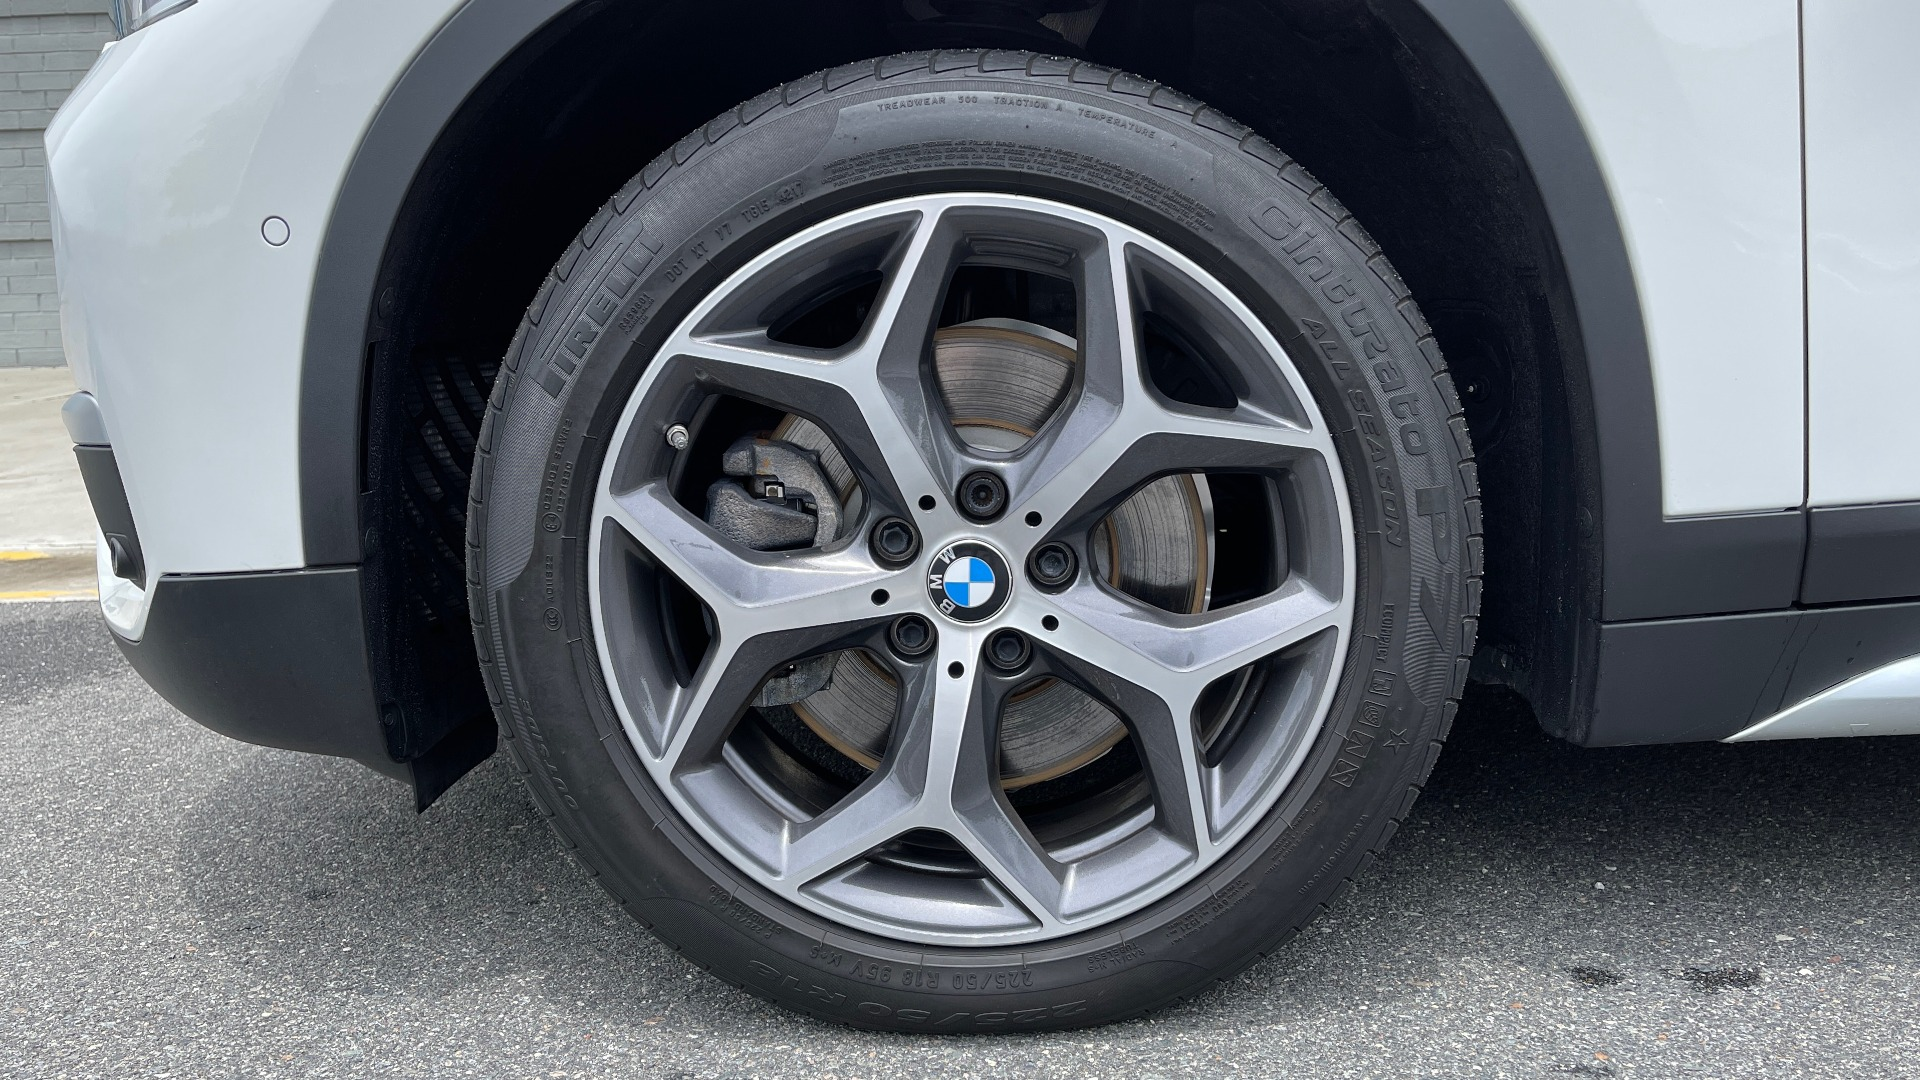 Used 2018 BMW X1 XDRIVE28I / CONV PKG / PANO-ROOF / HTD STS / PARK ASST / REARVIEW for sale $30,995 at Formula Imports in Charlotte NC 28227 86